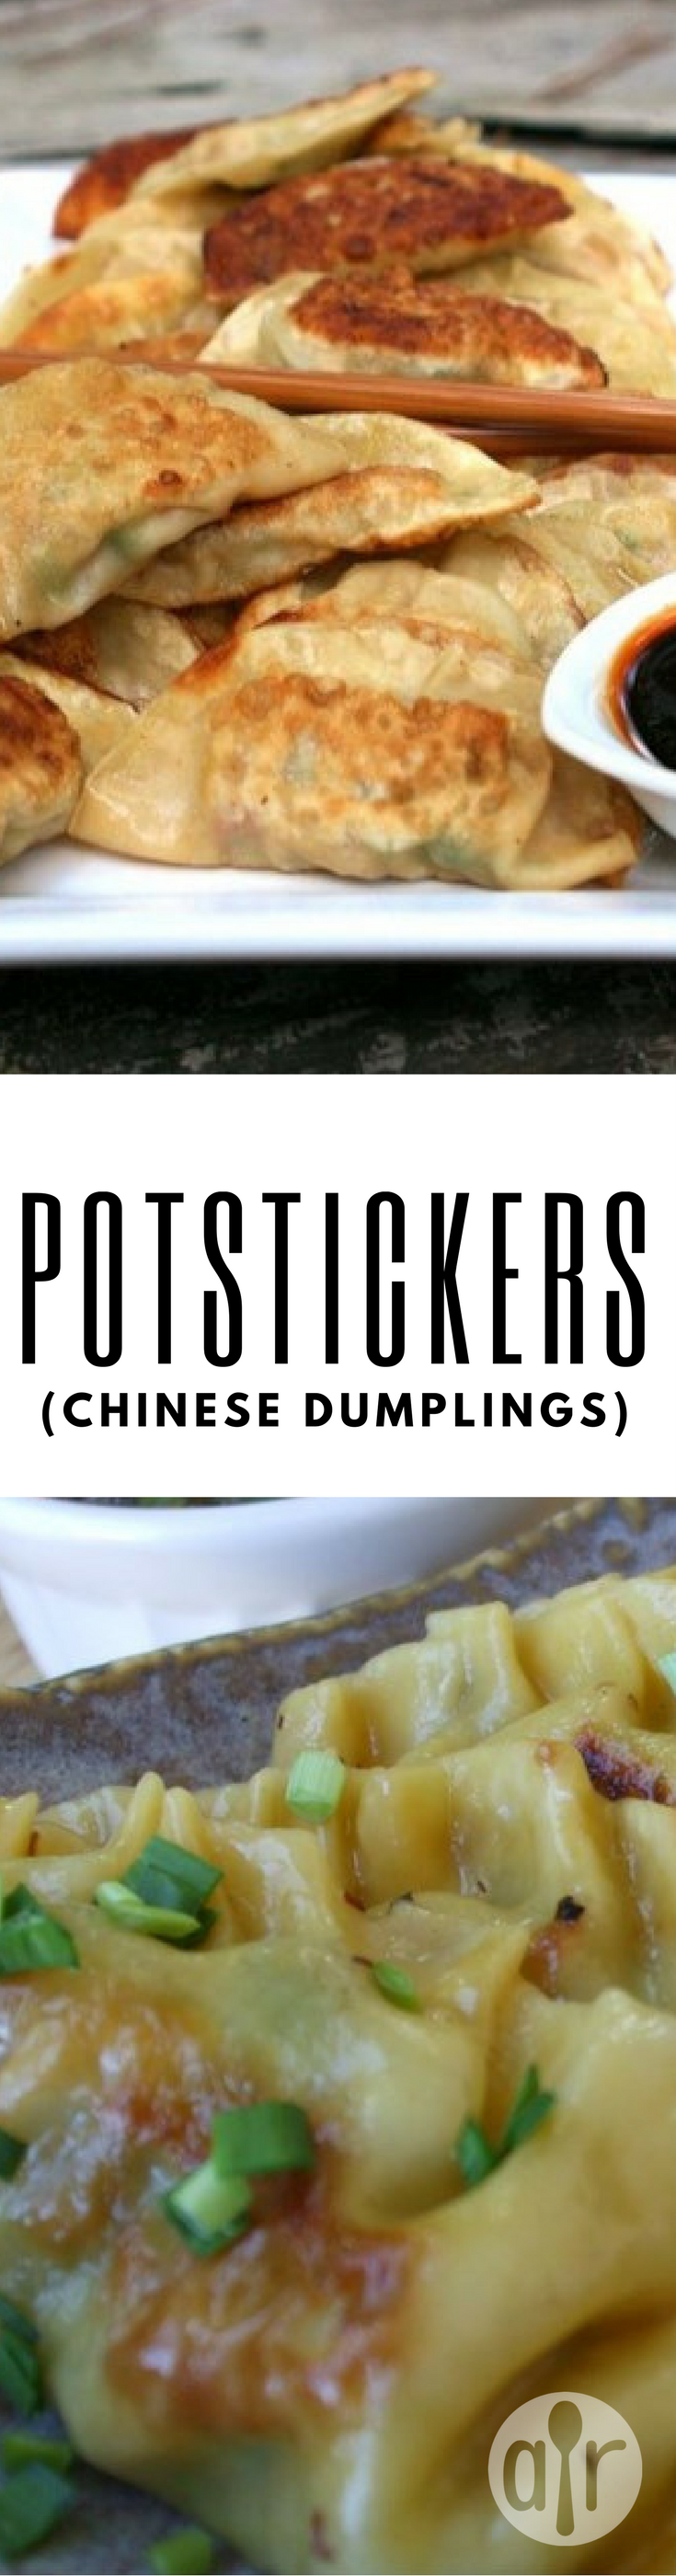 """Potstickers (Chinese Dumplings) 